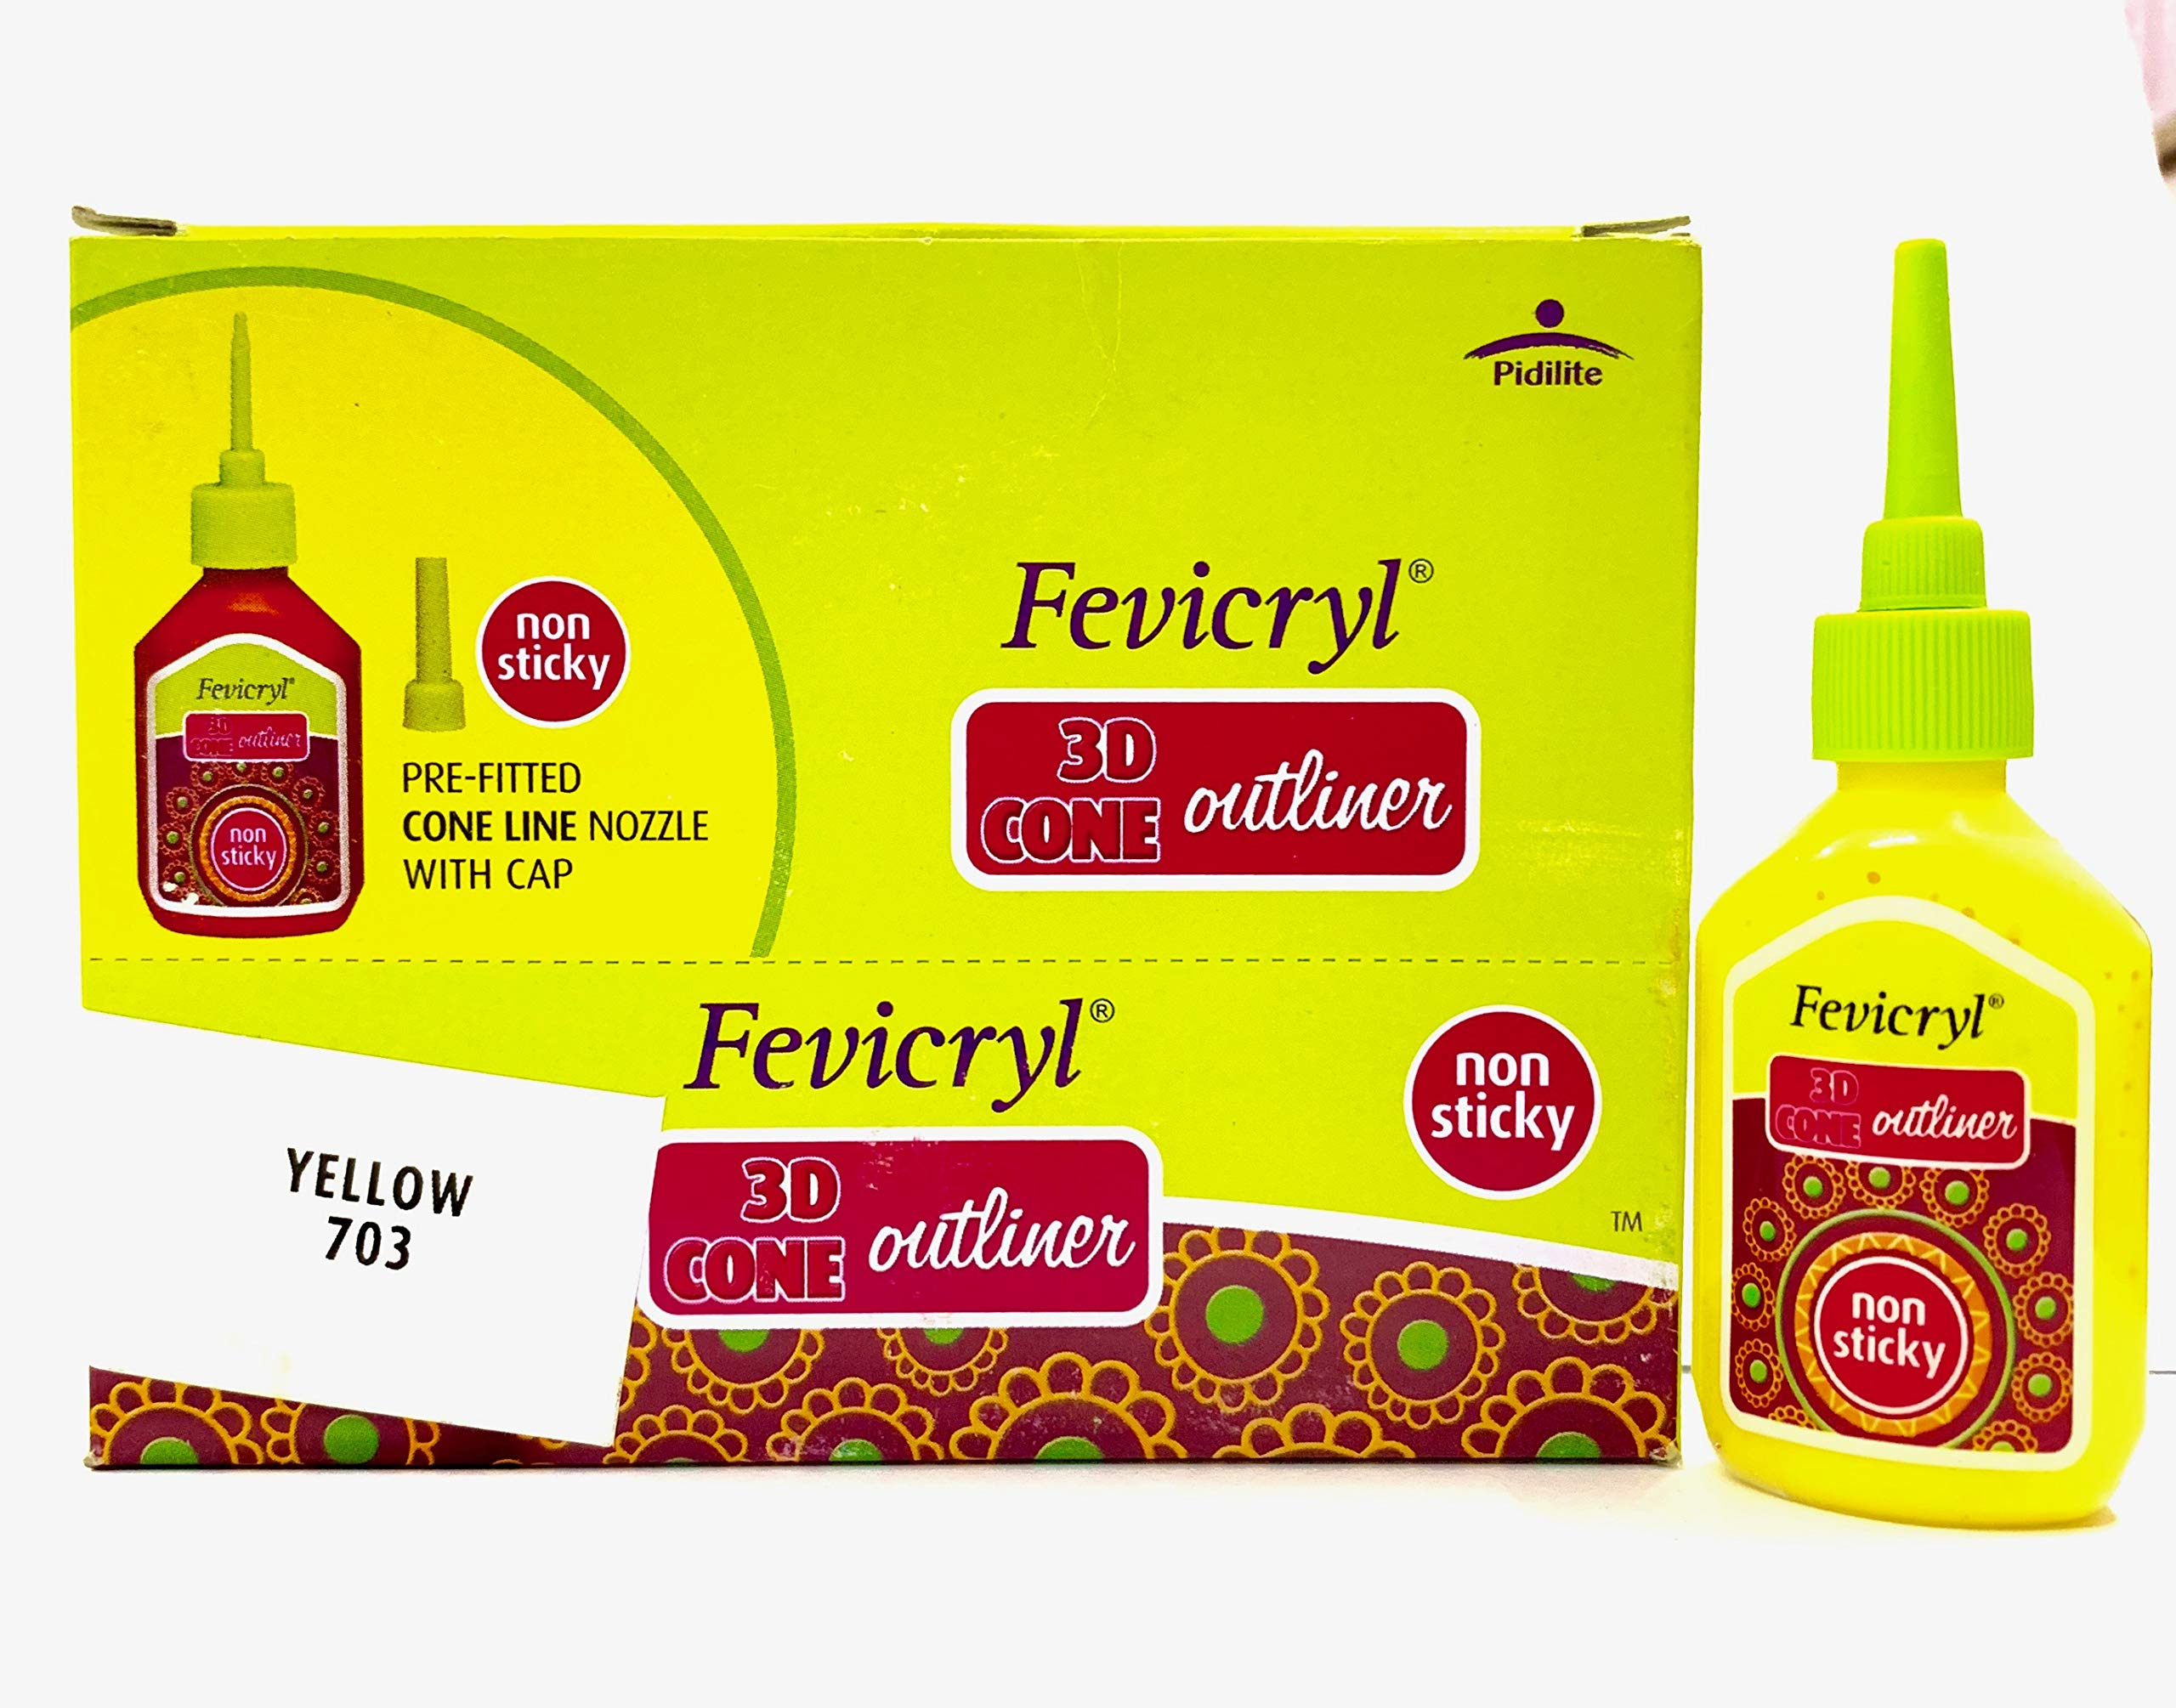 New Fevicryl Non Sticky 3D Cone Outliner Non-Toxic with Pre-Fitted Cone Line Nozzle with Cap (703) - 20ml Bottle -10 Bottle Pack - Colour - Yellow - with Free 3D Keyring by Fevicryl